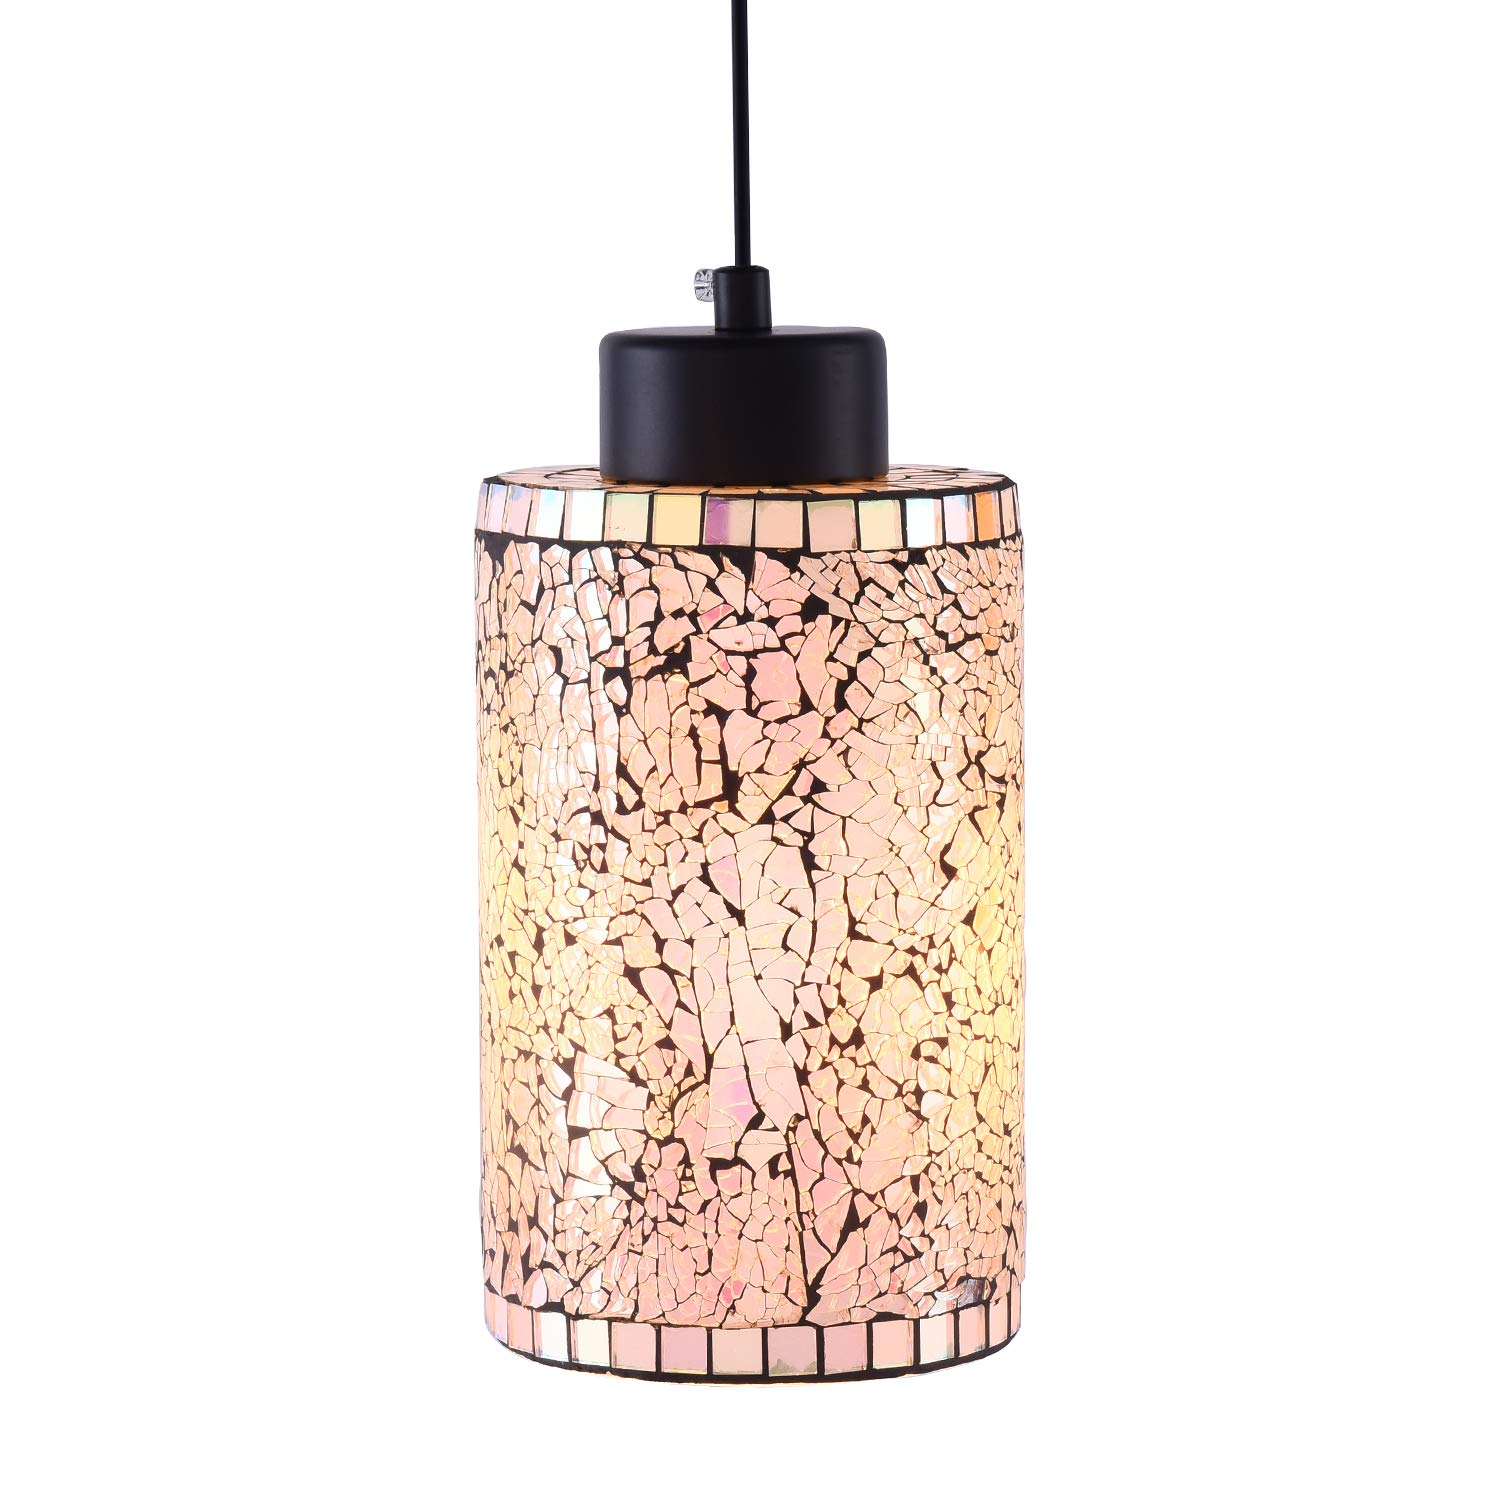 Modern mini pendant light hand crafted mosaic color glass shade hanging lamp decorative colorful pendant lighting for kitchen island dining room bar